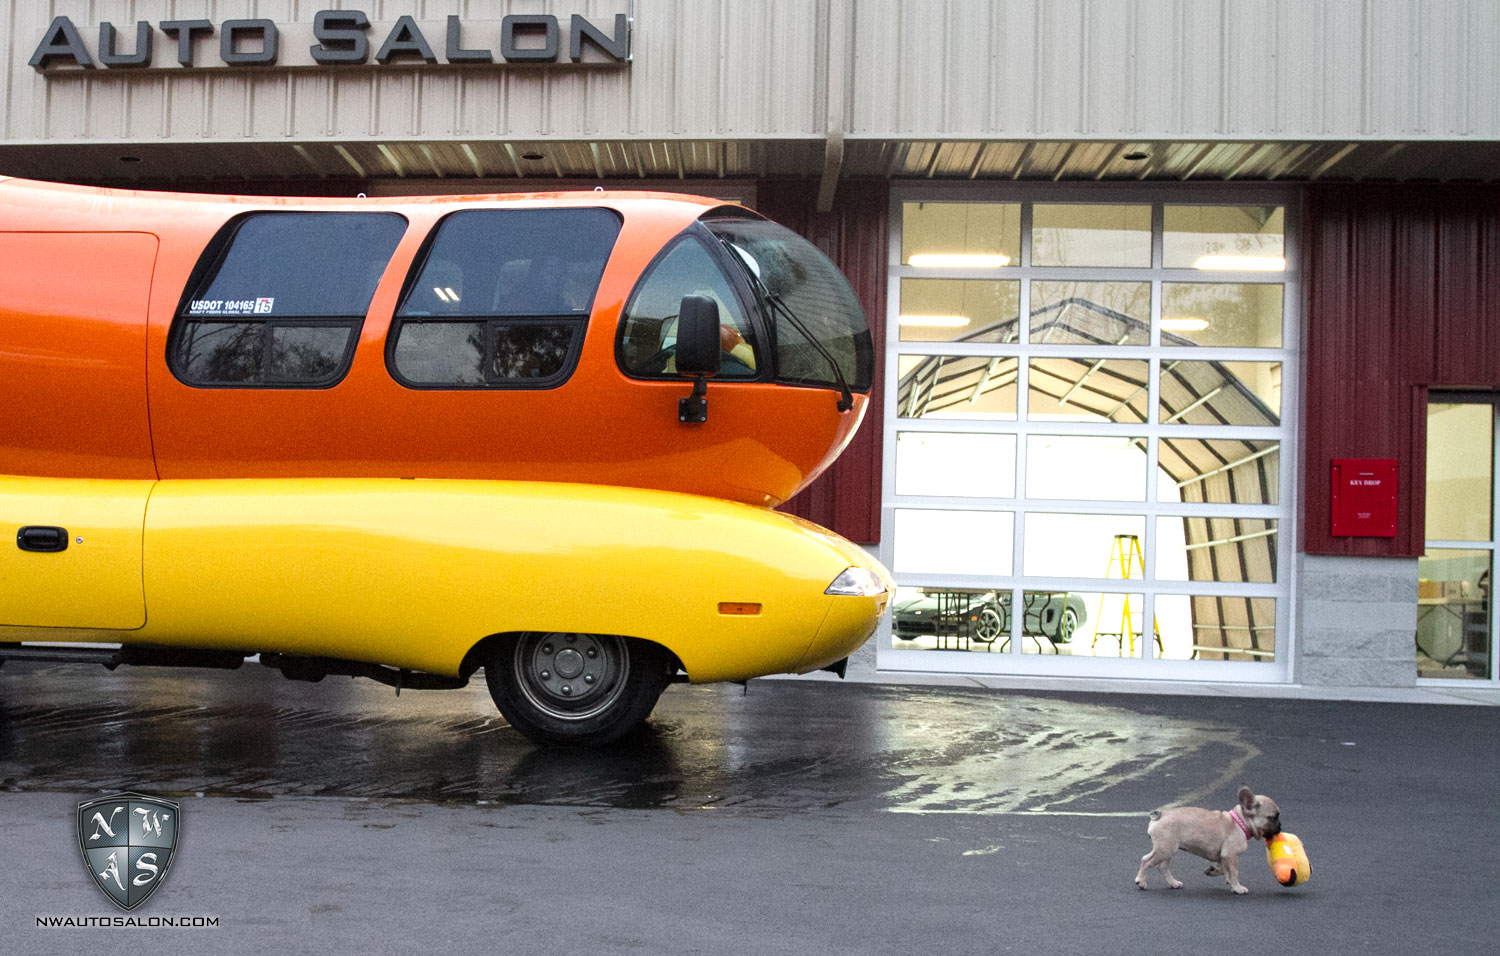 Seattle Auto Detailing NorthWest Auto Salon Oscar Mayer Wienermobile handwash